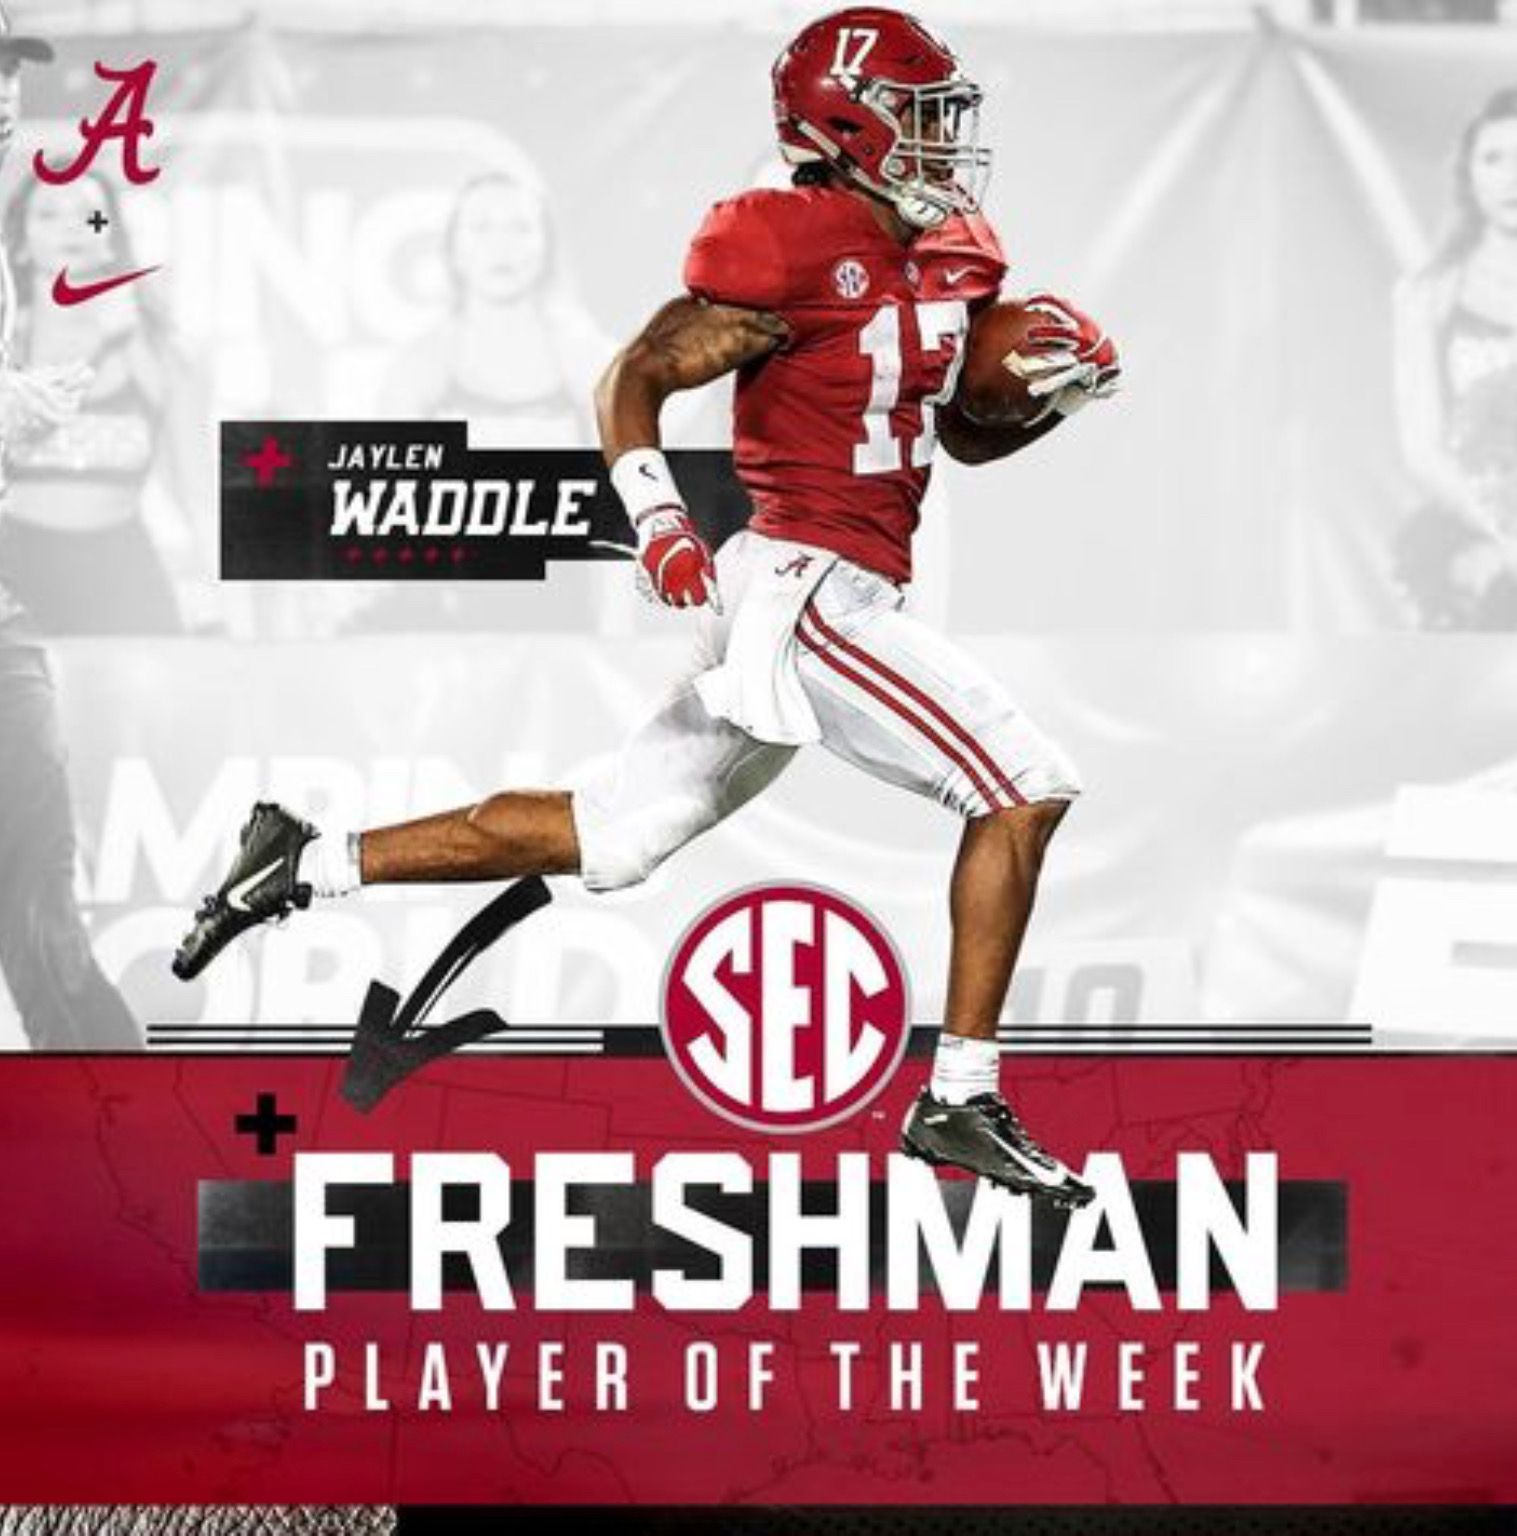 Jaylen Waddle Alabama Rolltide Bama Builtbybama Rtr Crimsontide Rammerjamm Alabama Crimson Tide Football Alabama Football Roll Tide Alabama Crimson Tide